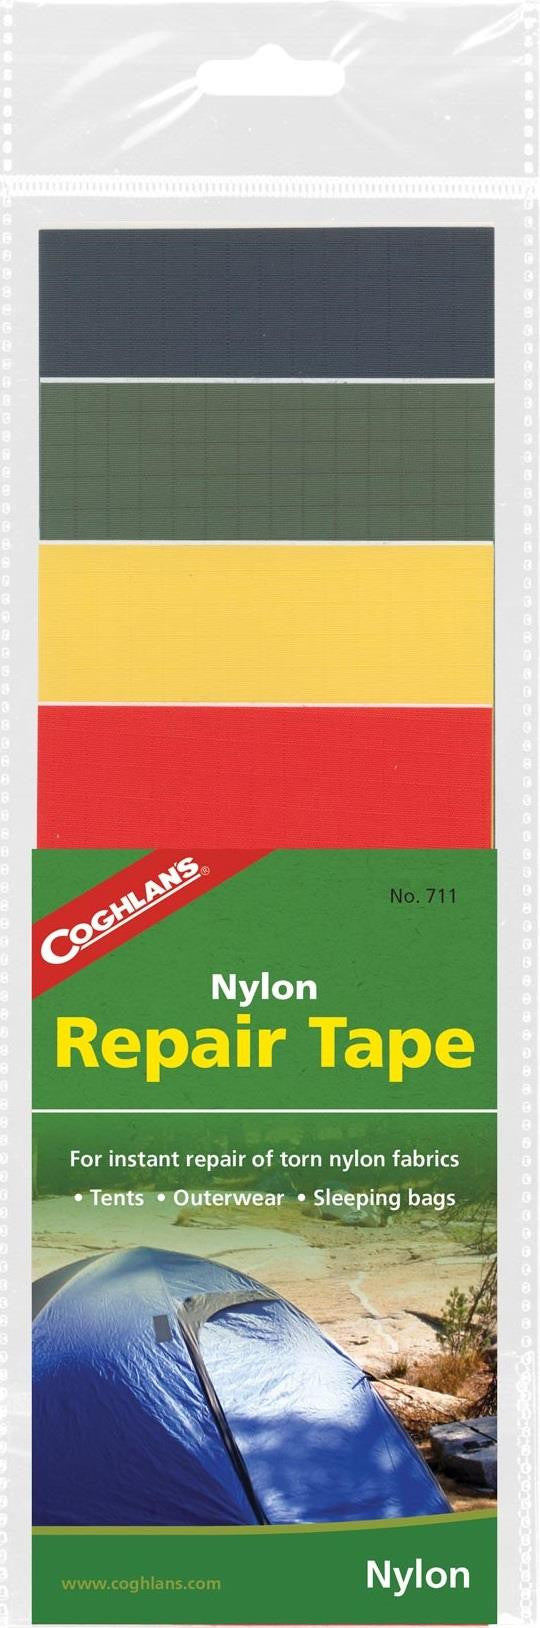 Coghlan's Vinyl Repair Tape